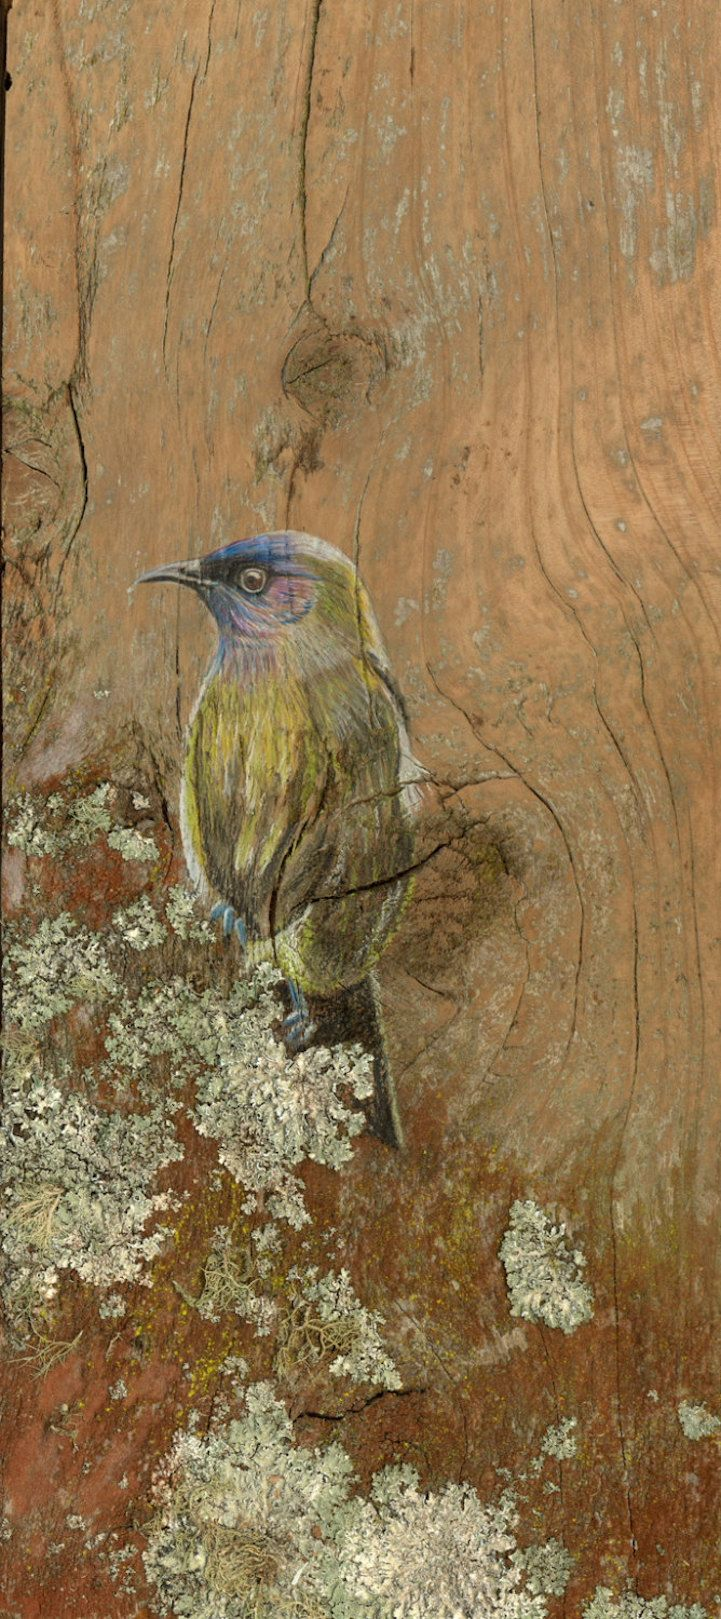 Rustic Portraits of New Zealand Birds Drawn on Recycled Timber - My Modern Met